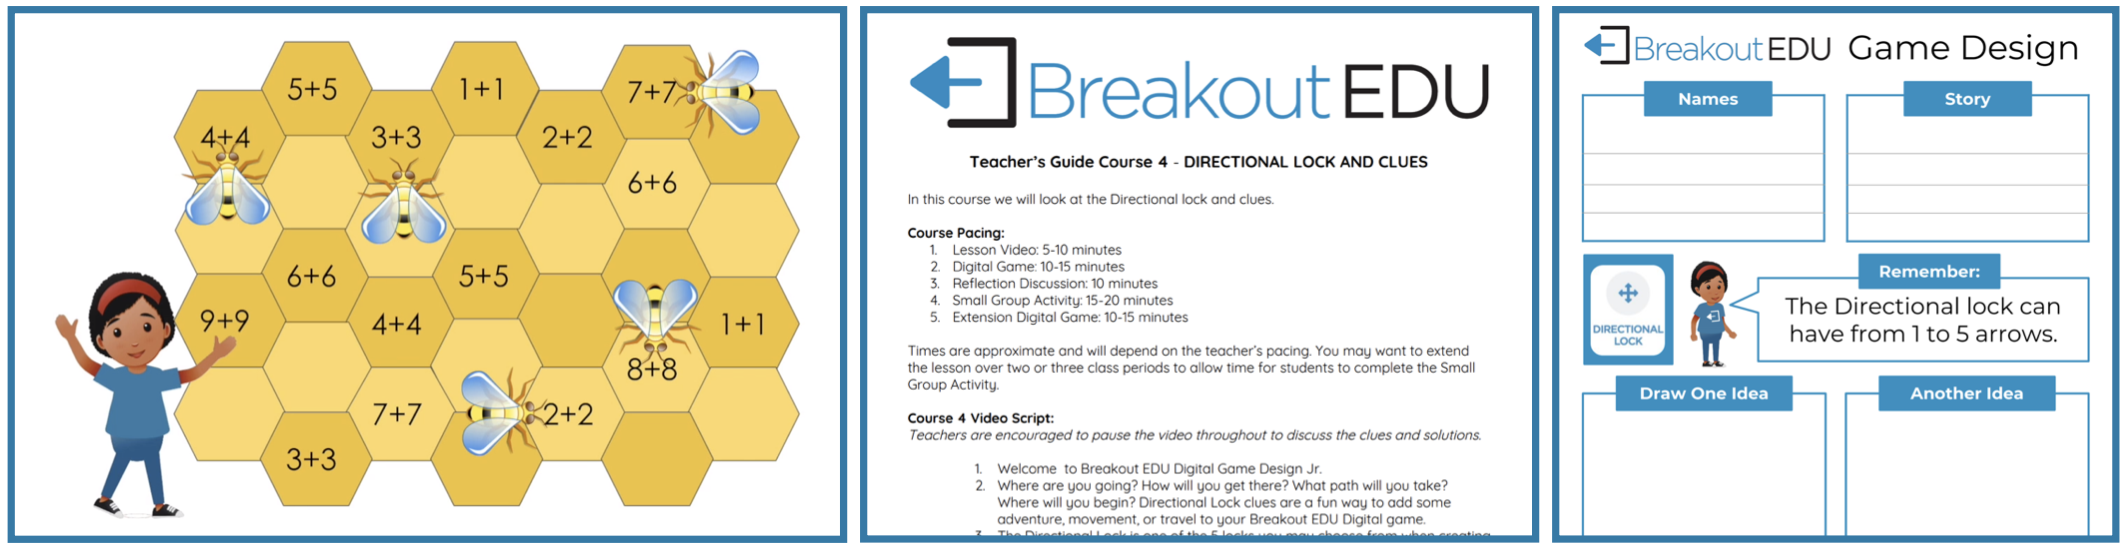 Game Design Courses can get students creating their own games on the Breakout EDU Platform